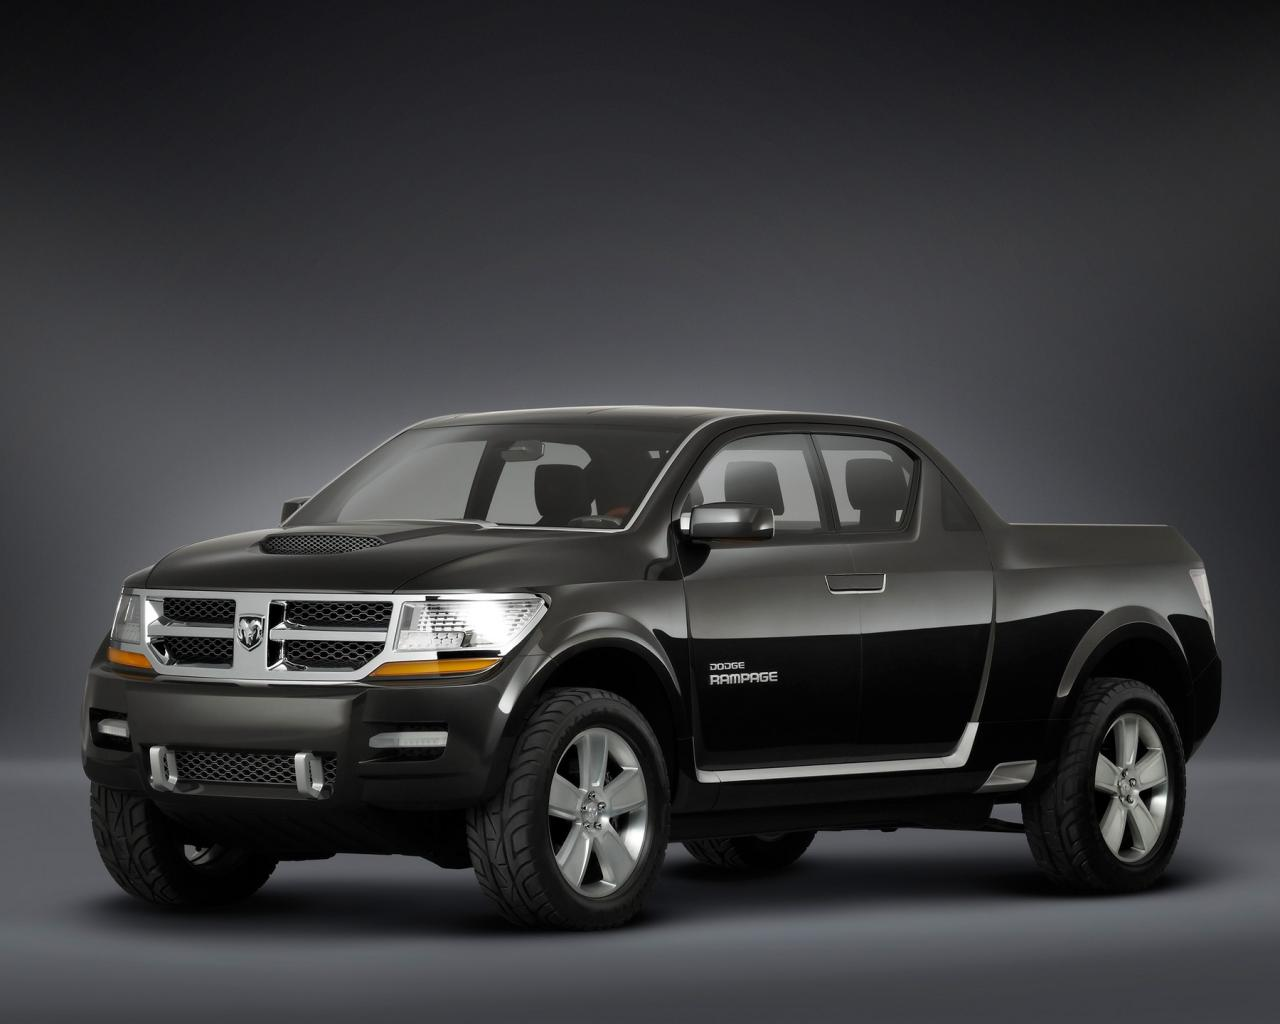 2006 Dodge Rampage Concept Single Angle 1280x1024